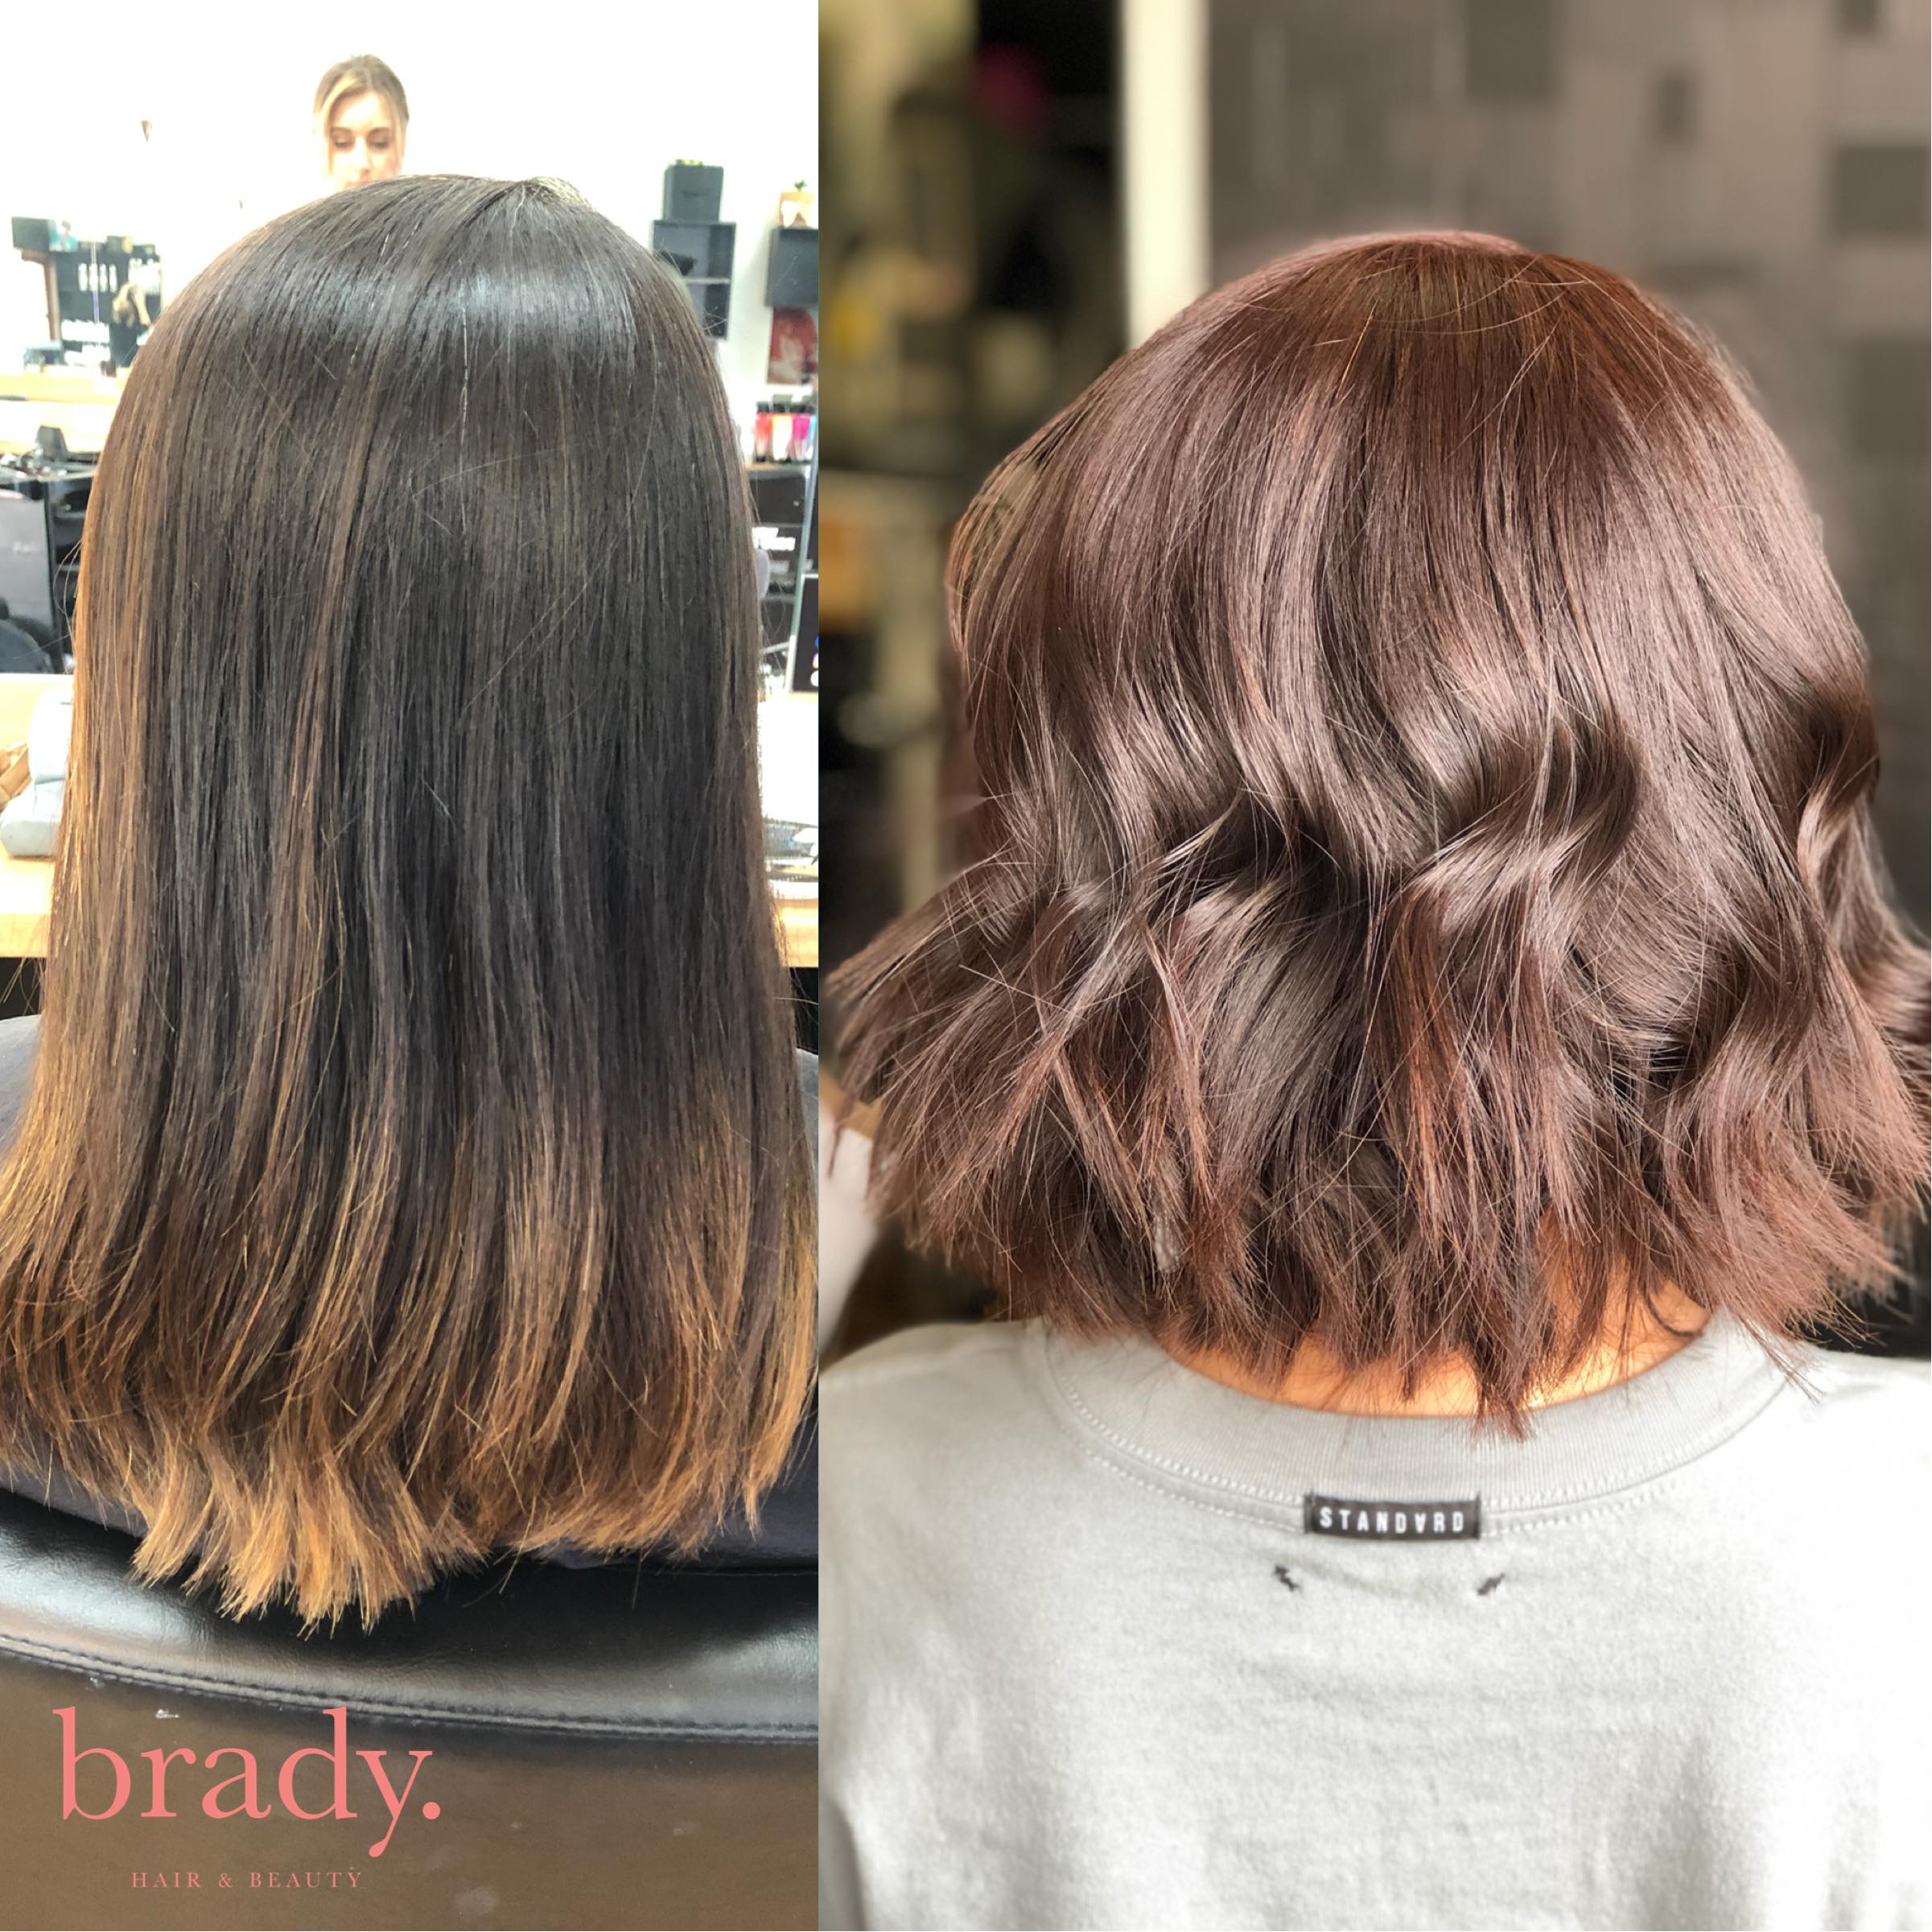 Before and after picture of woman with short, wavy, reddish brown hair styled by Brady. Hair & Beauty, Toowong, Brisbane.